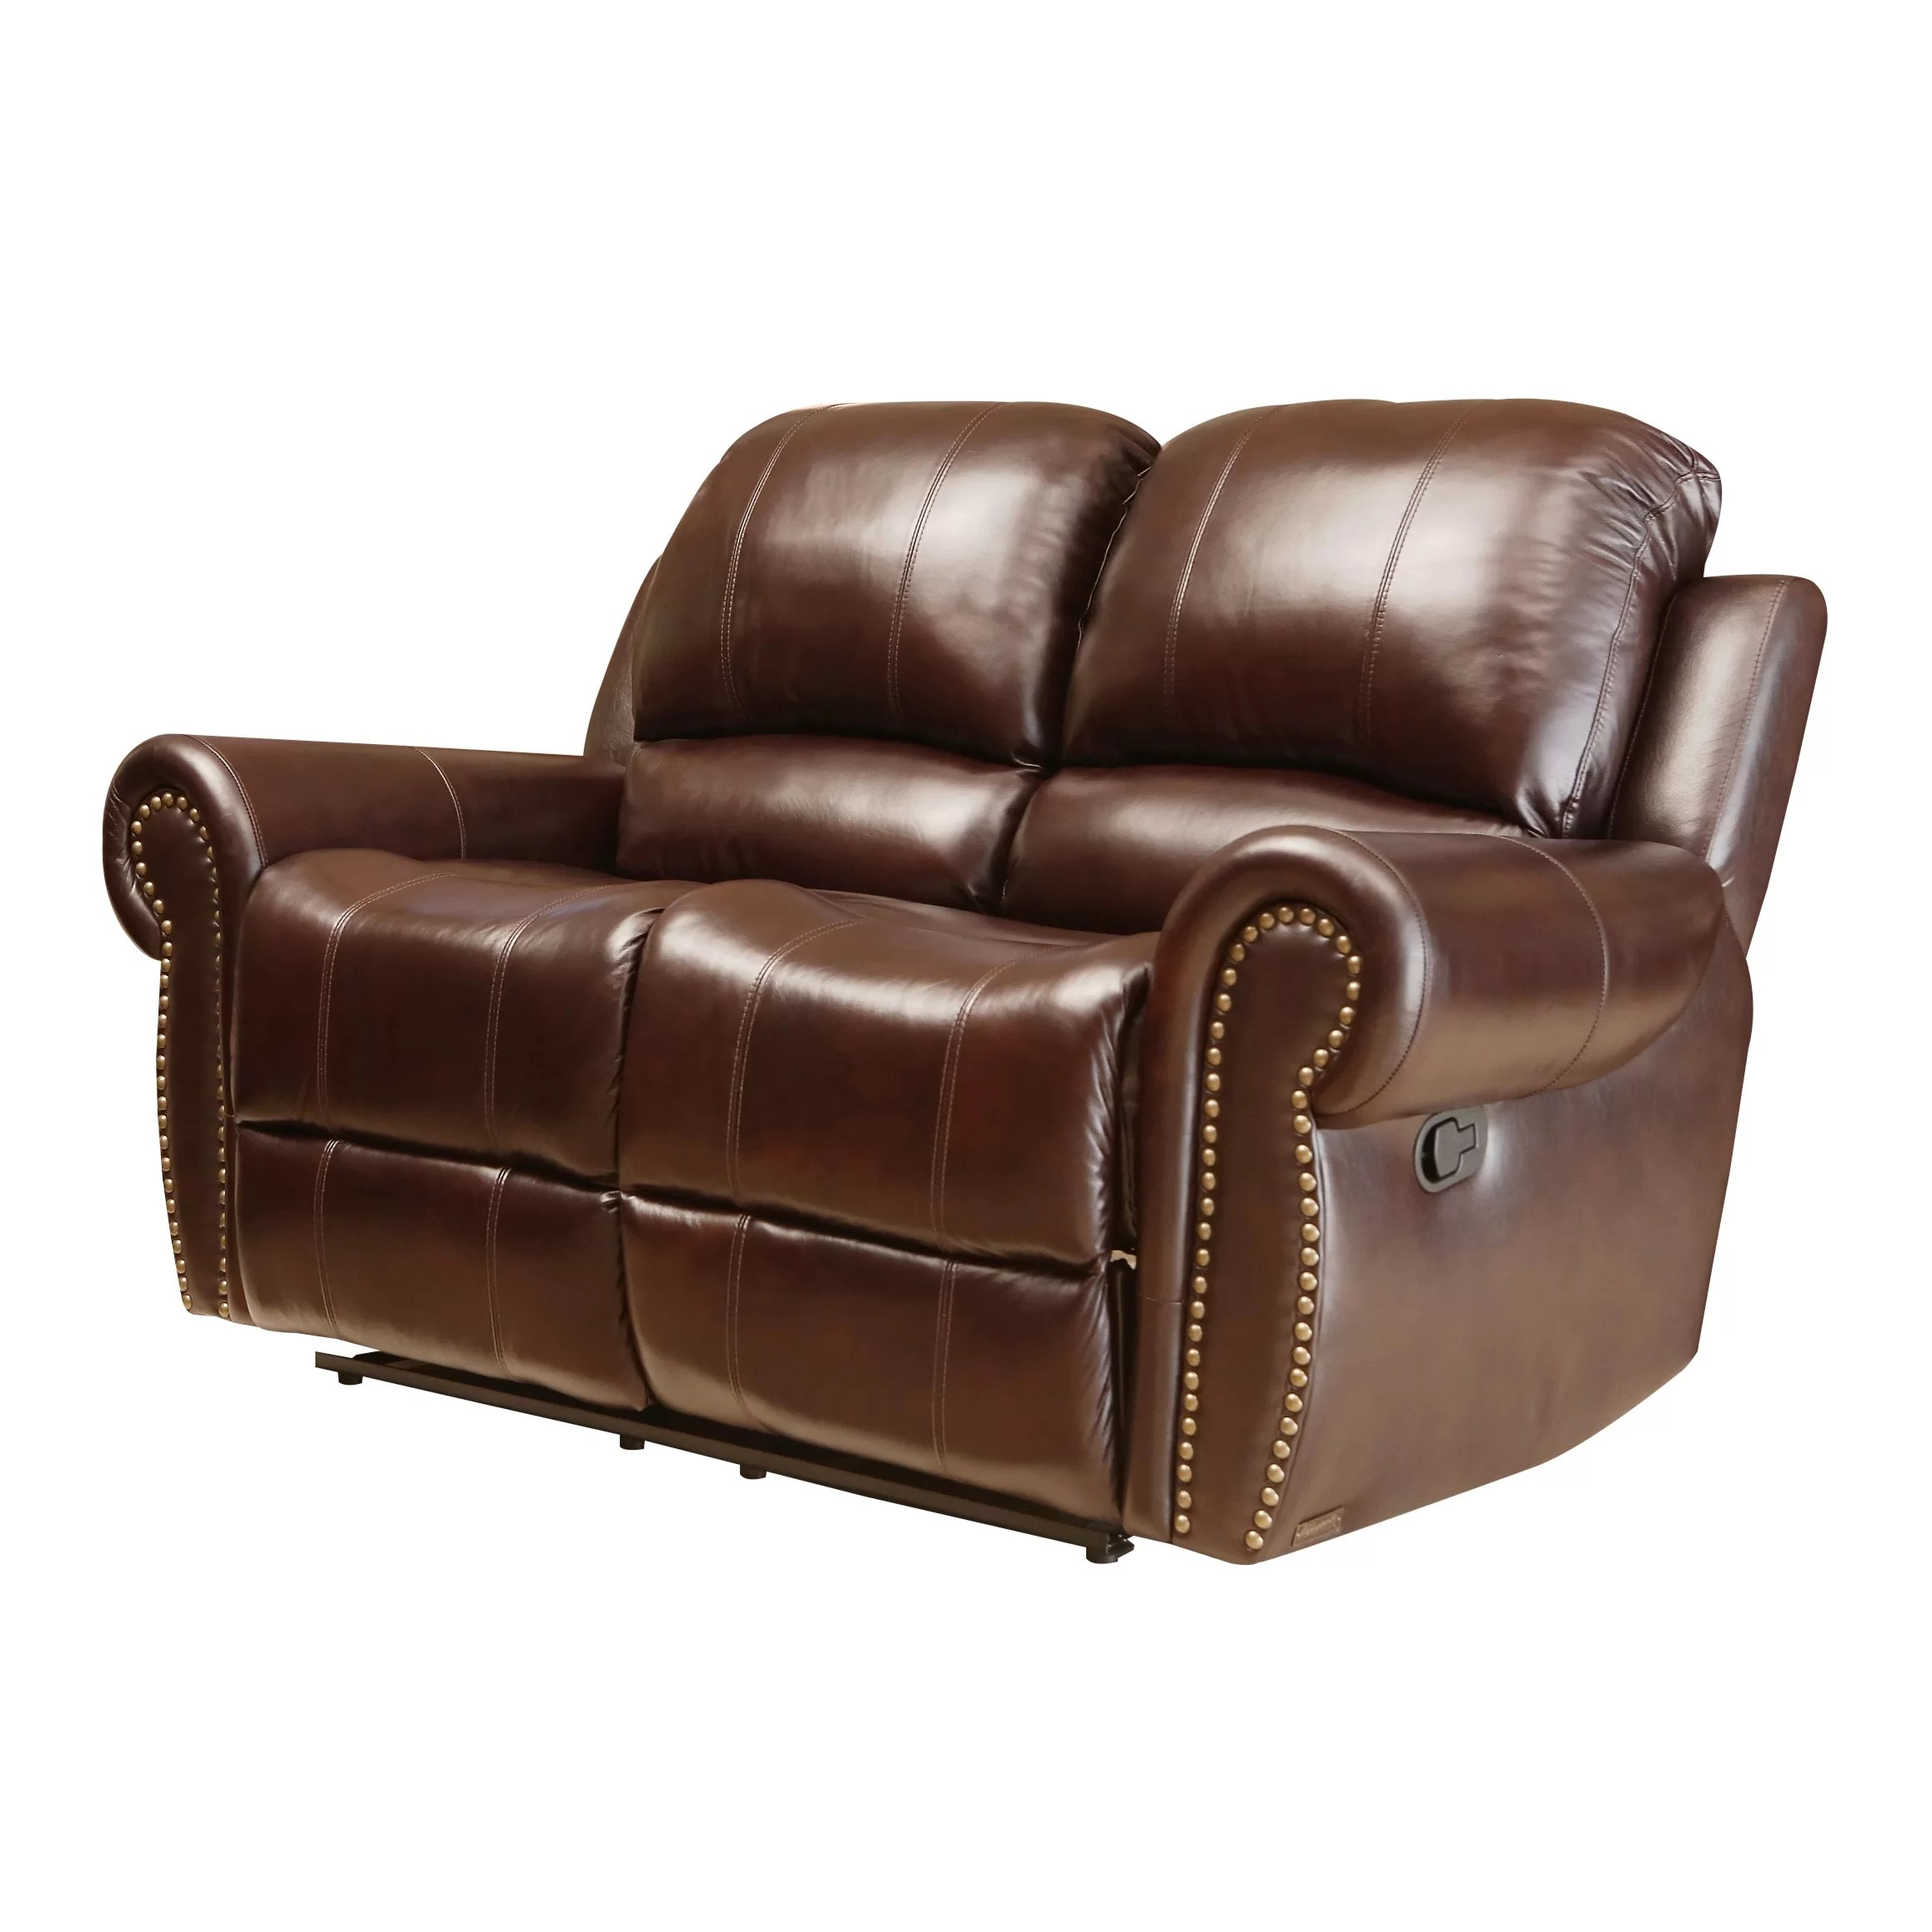 abbyson leather sofa most comfortable ikea bed living sedona reclining loveseat and reviews